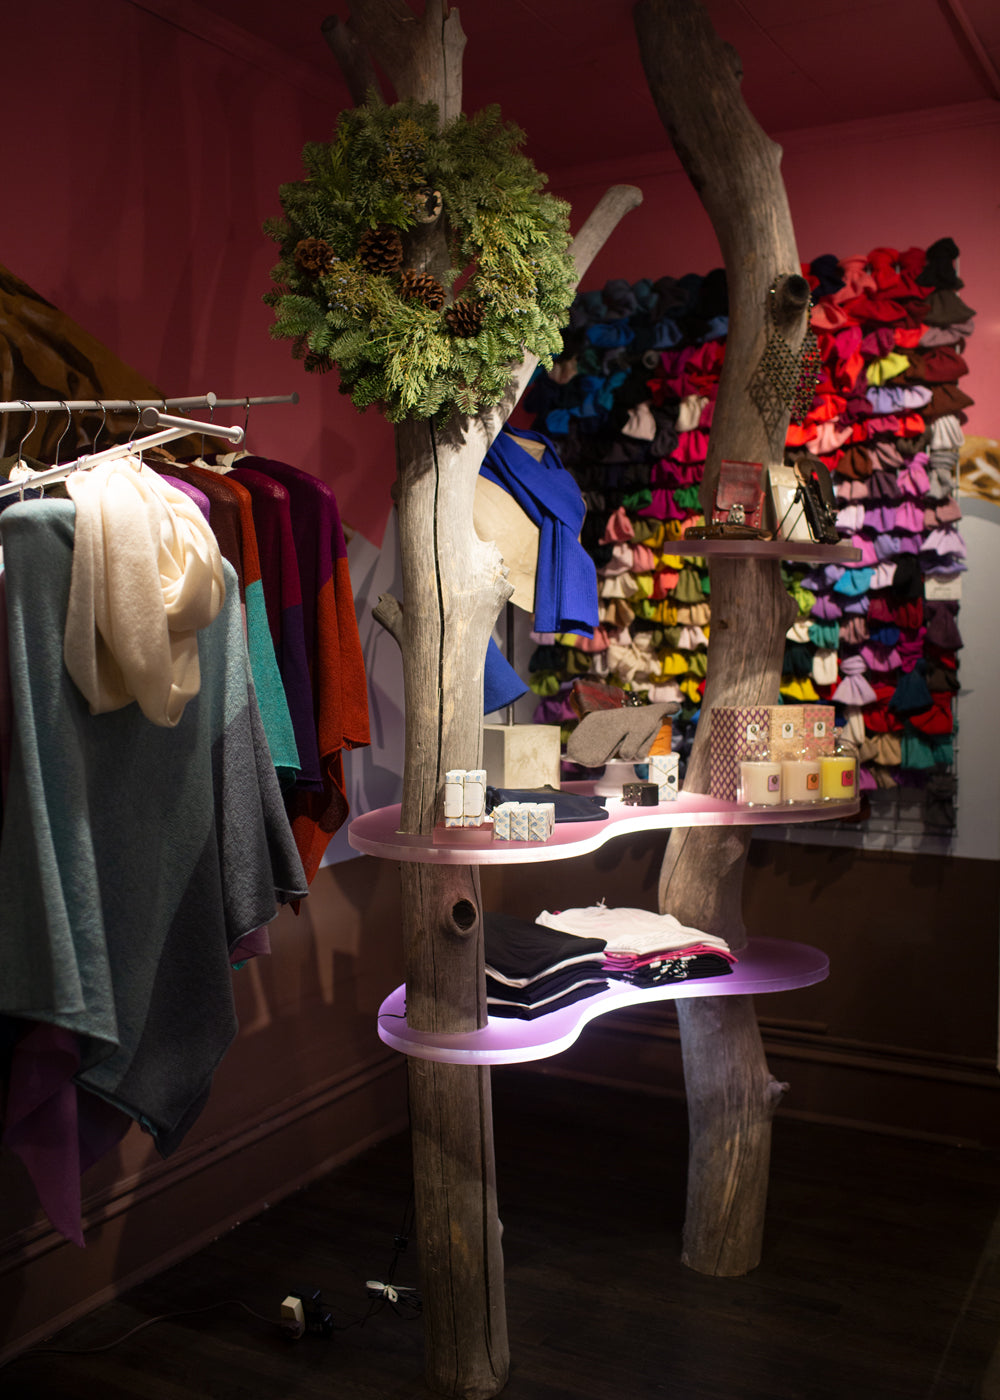 chocolate + cashmere boutique at 109 E. Palace on the Plaza in Santa Fe